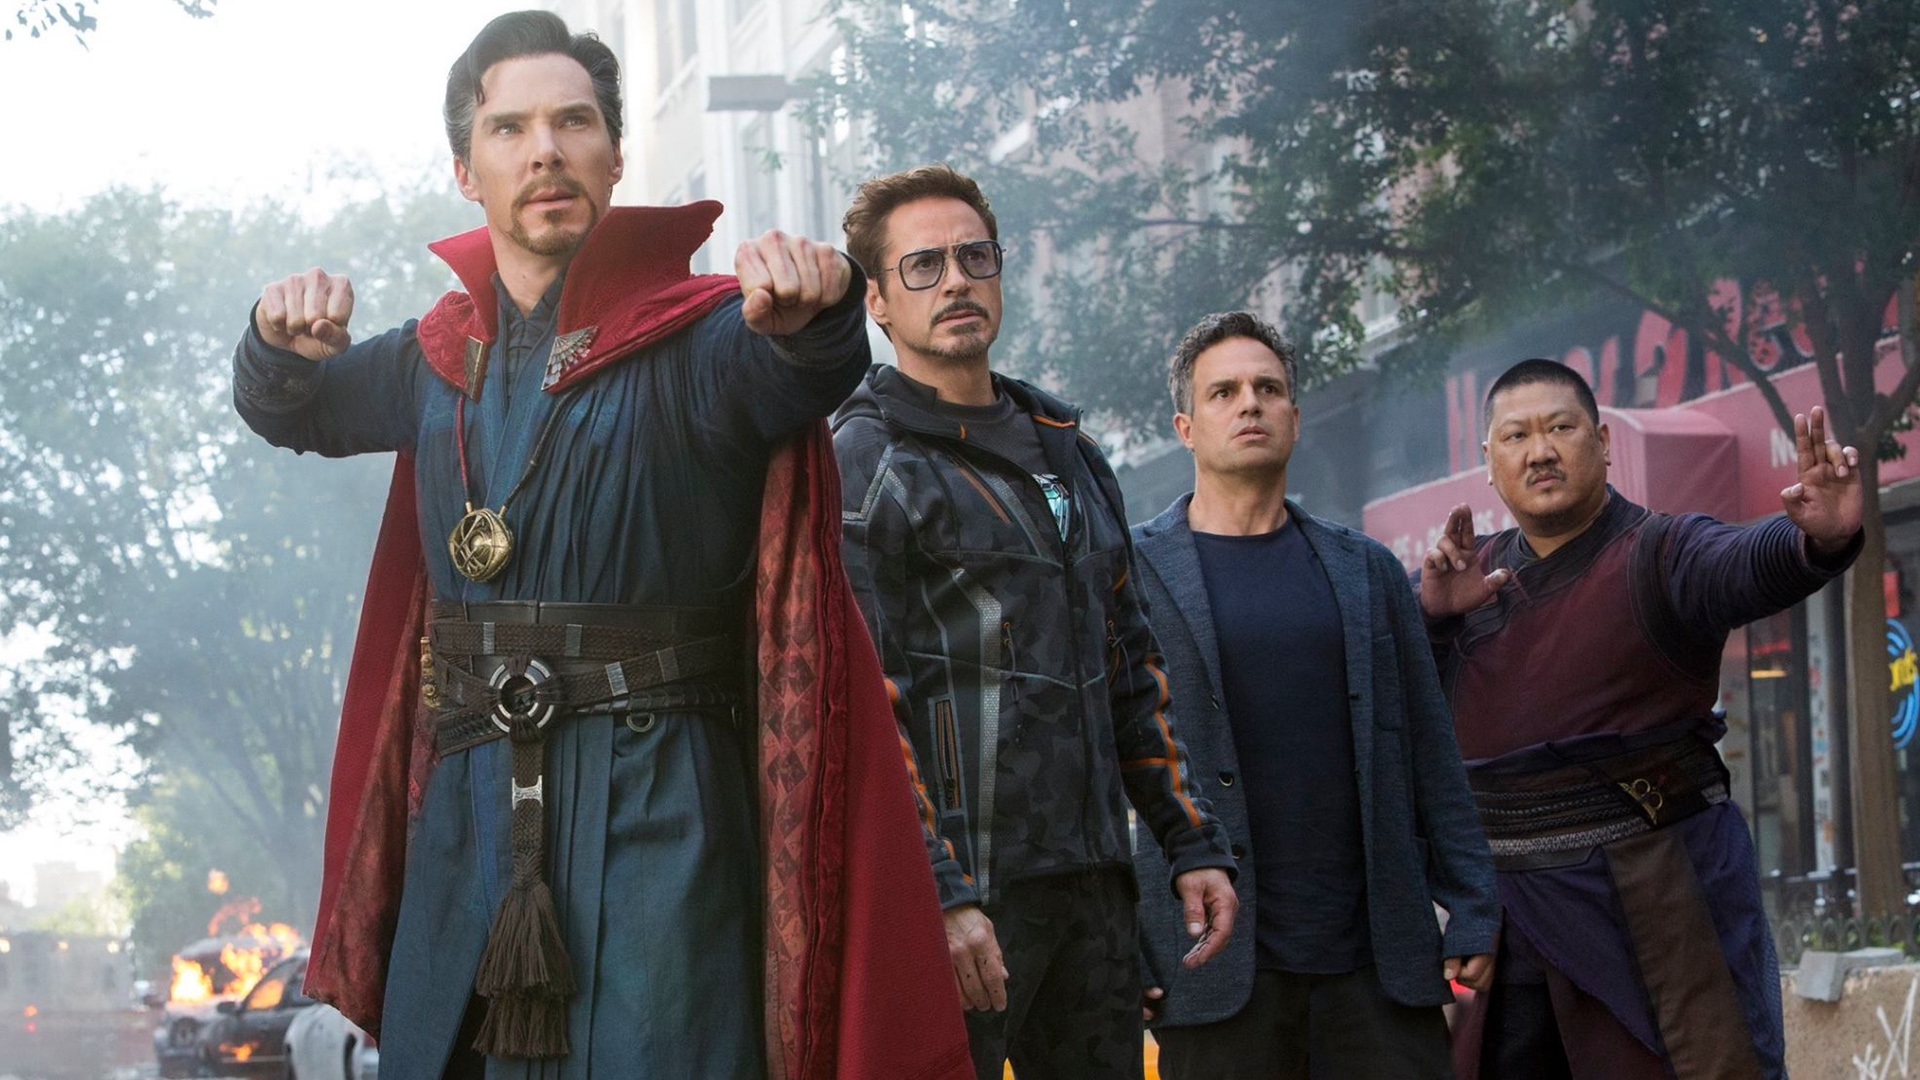 avengers-4-will-not-be-a-second-part-of-the-infinity-war-story-and-will-focus-on-different-heroes-social.jpg